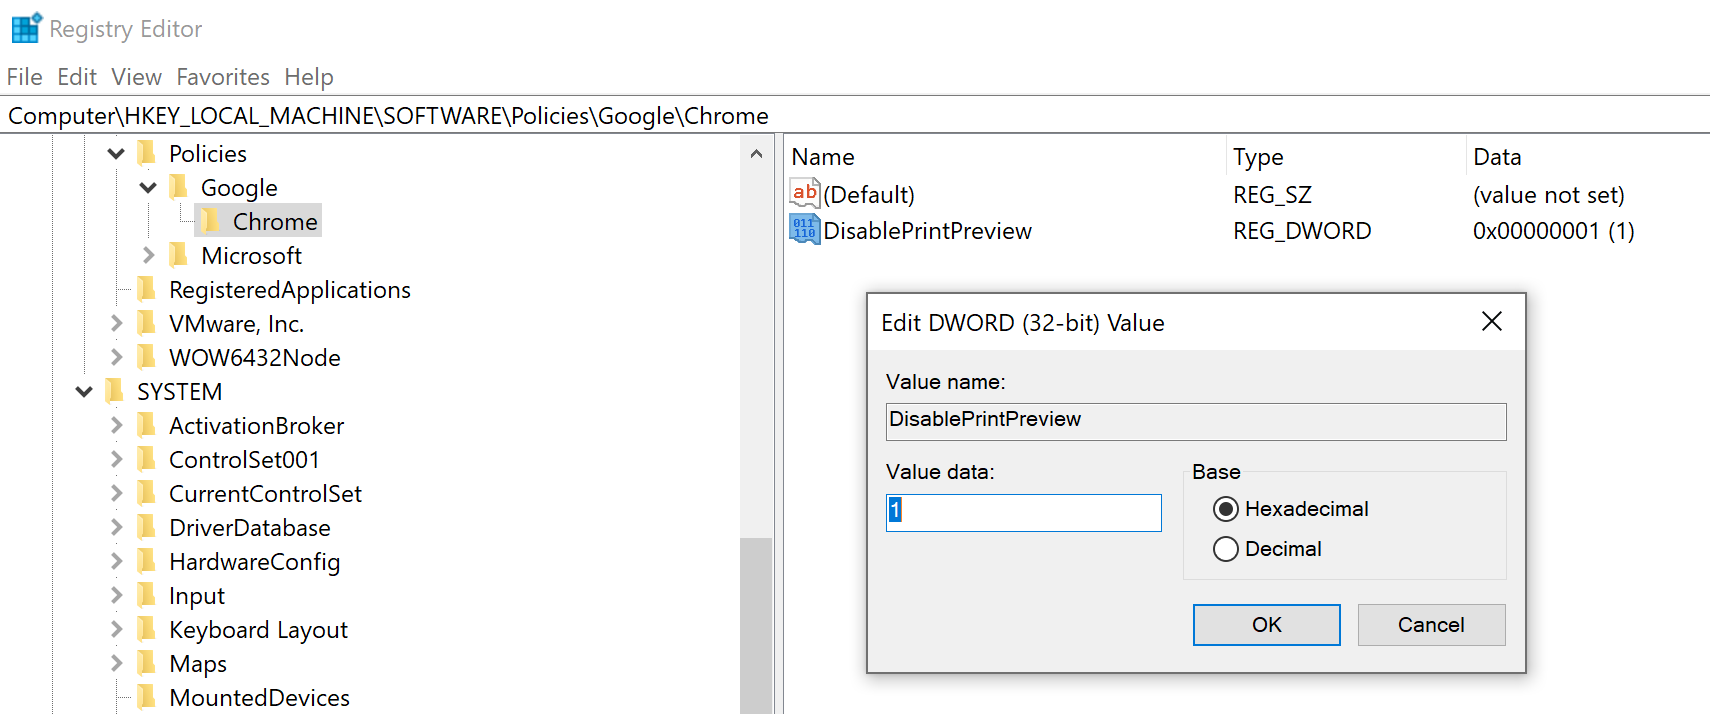 Add DisablePrintPreview in Computer\HKEY_LOCAL_MACHINE\SOFTWARE\Policies\Google\Chrome